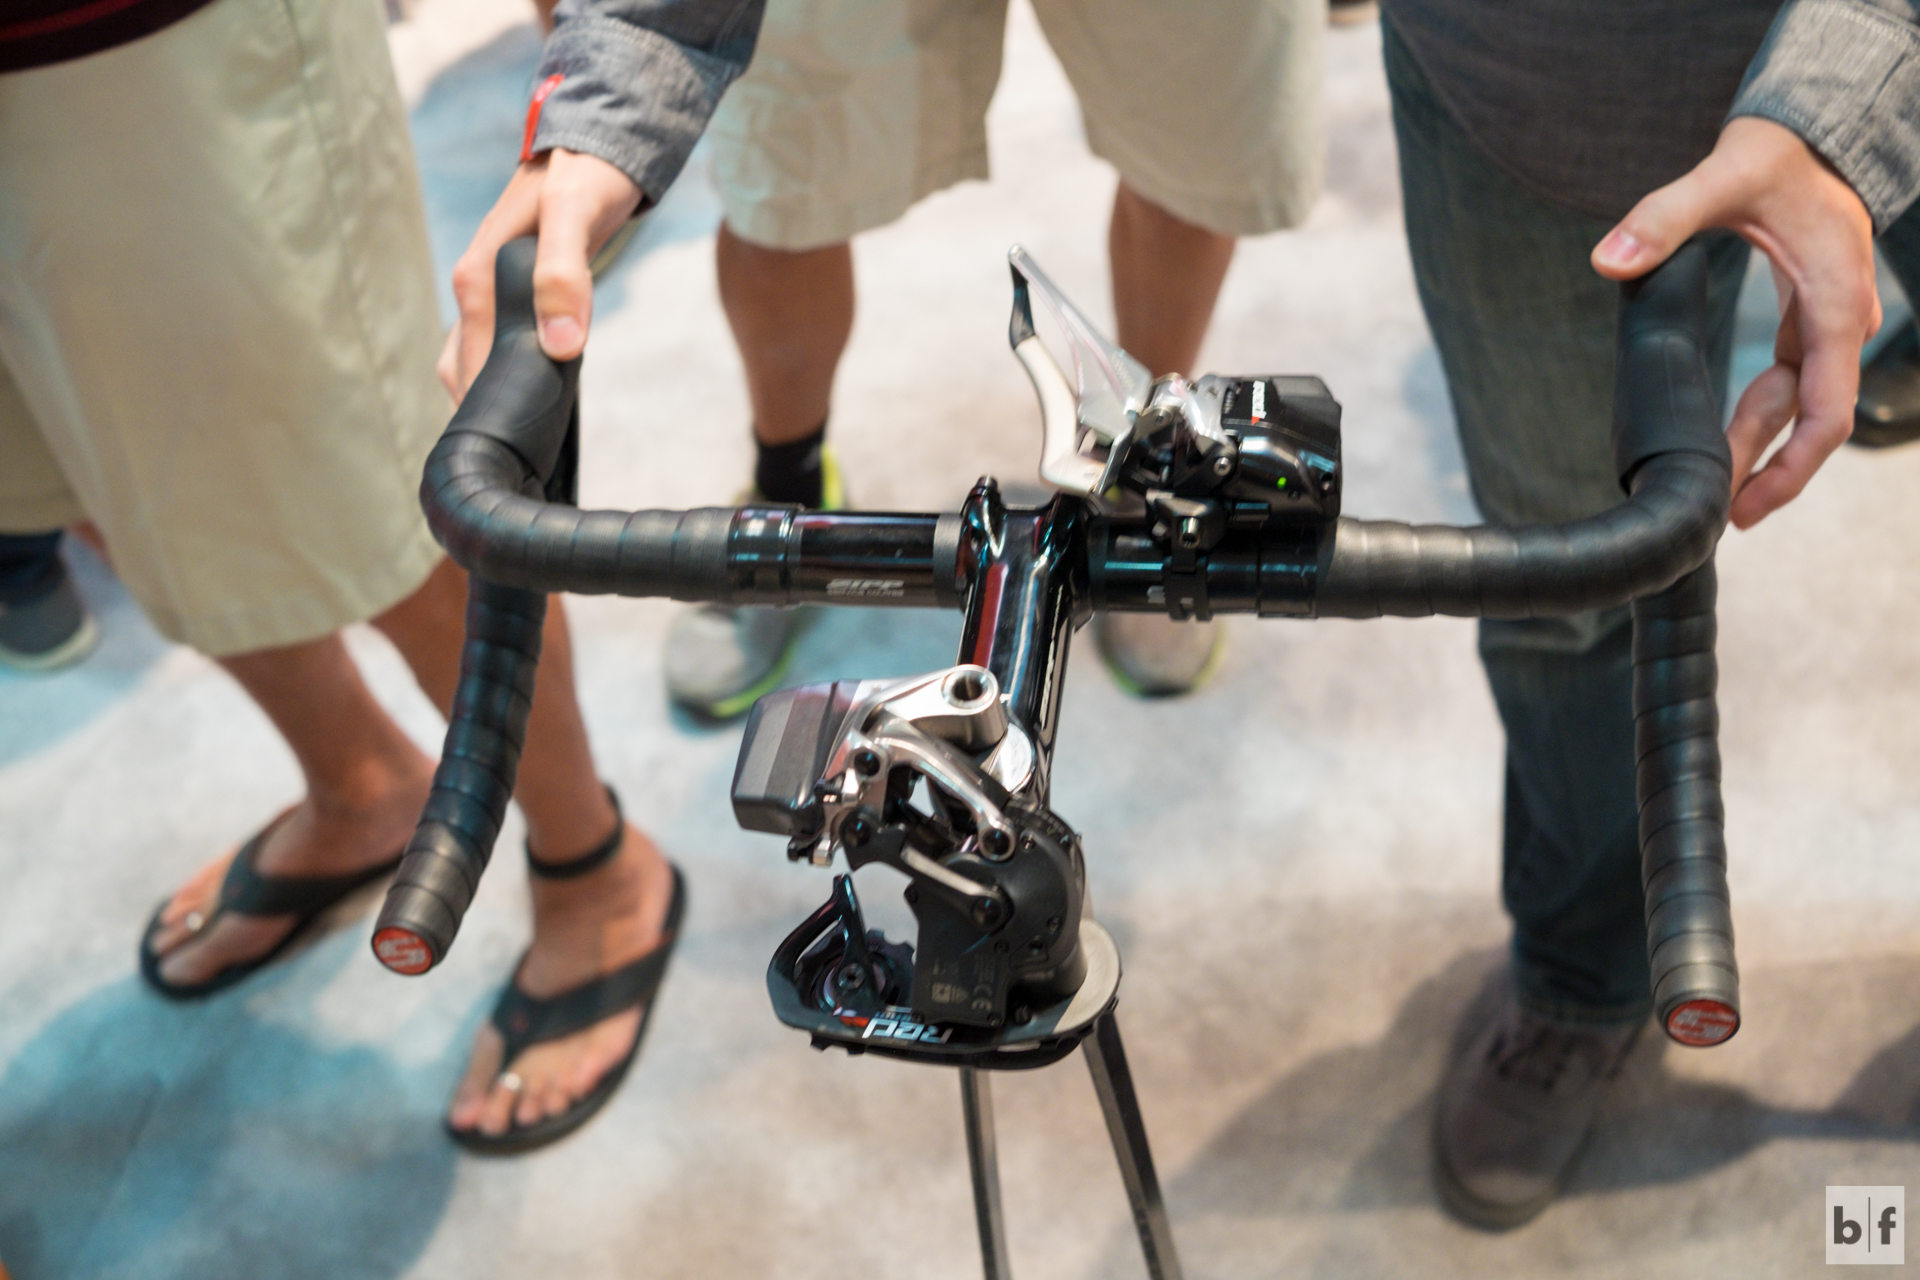 i've been waiting and waiting and when it was announced at eurobike i jumped for joy. being able to try it out and talk to the SRAM staff confirmed all the marketing and press i'd read. this is going to be a really awesome product and i can't wait to upgrade in 2016!